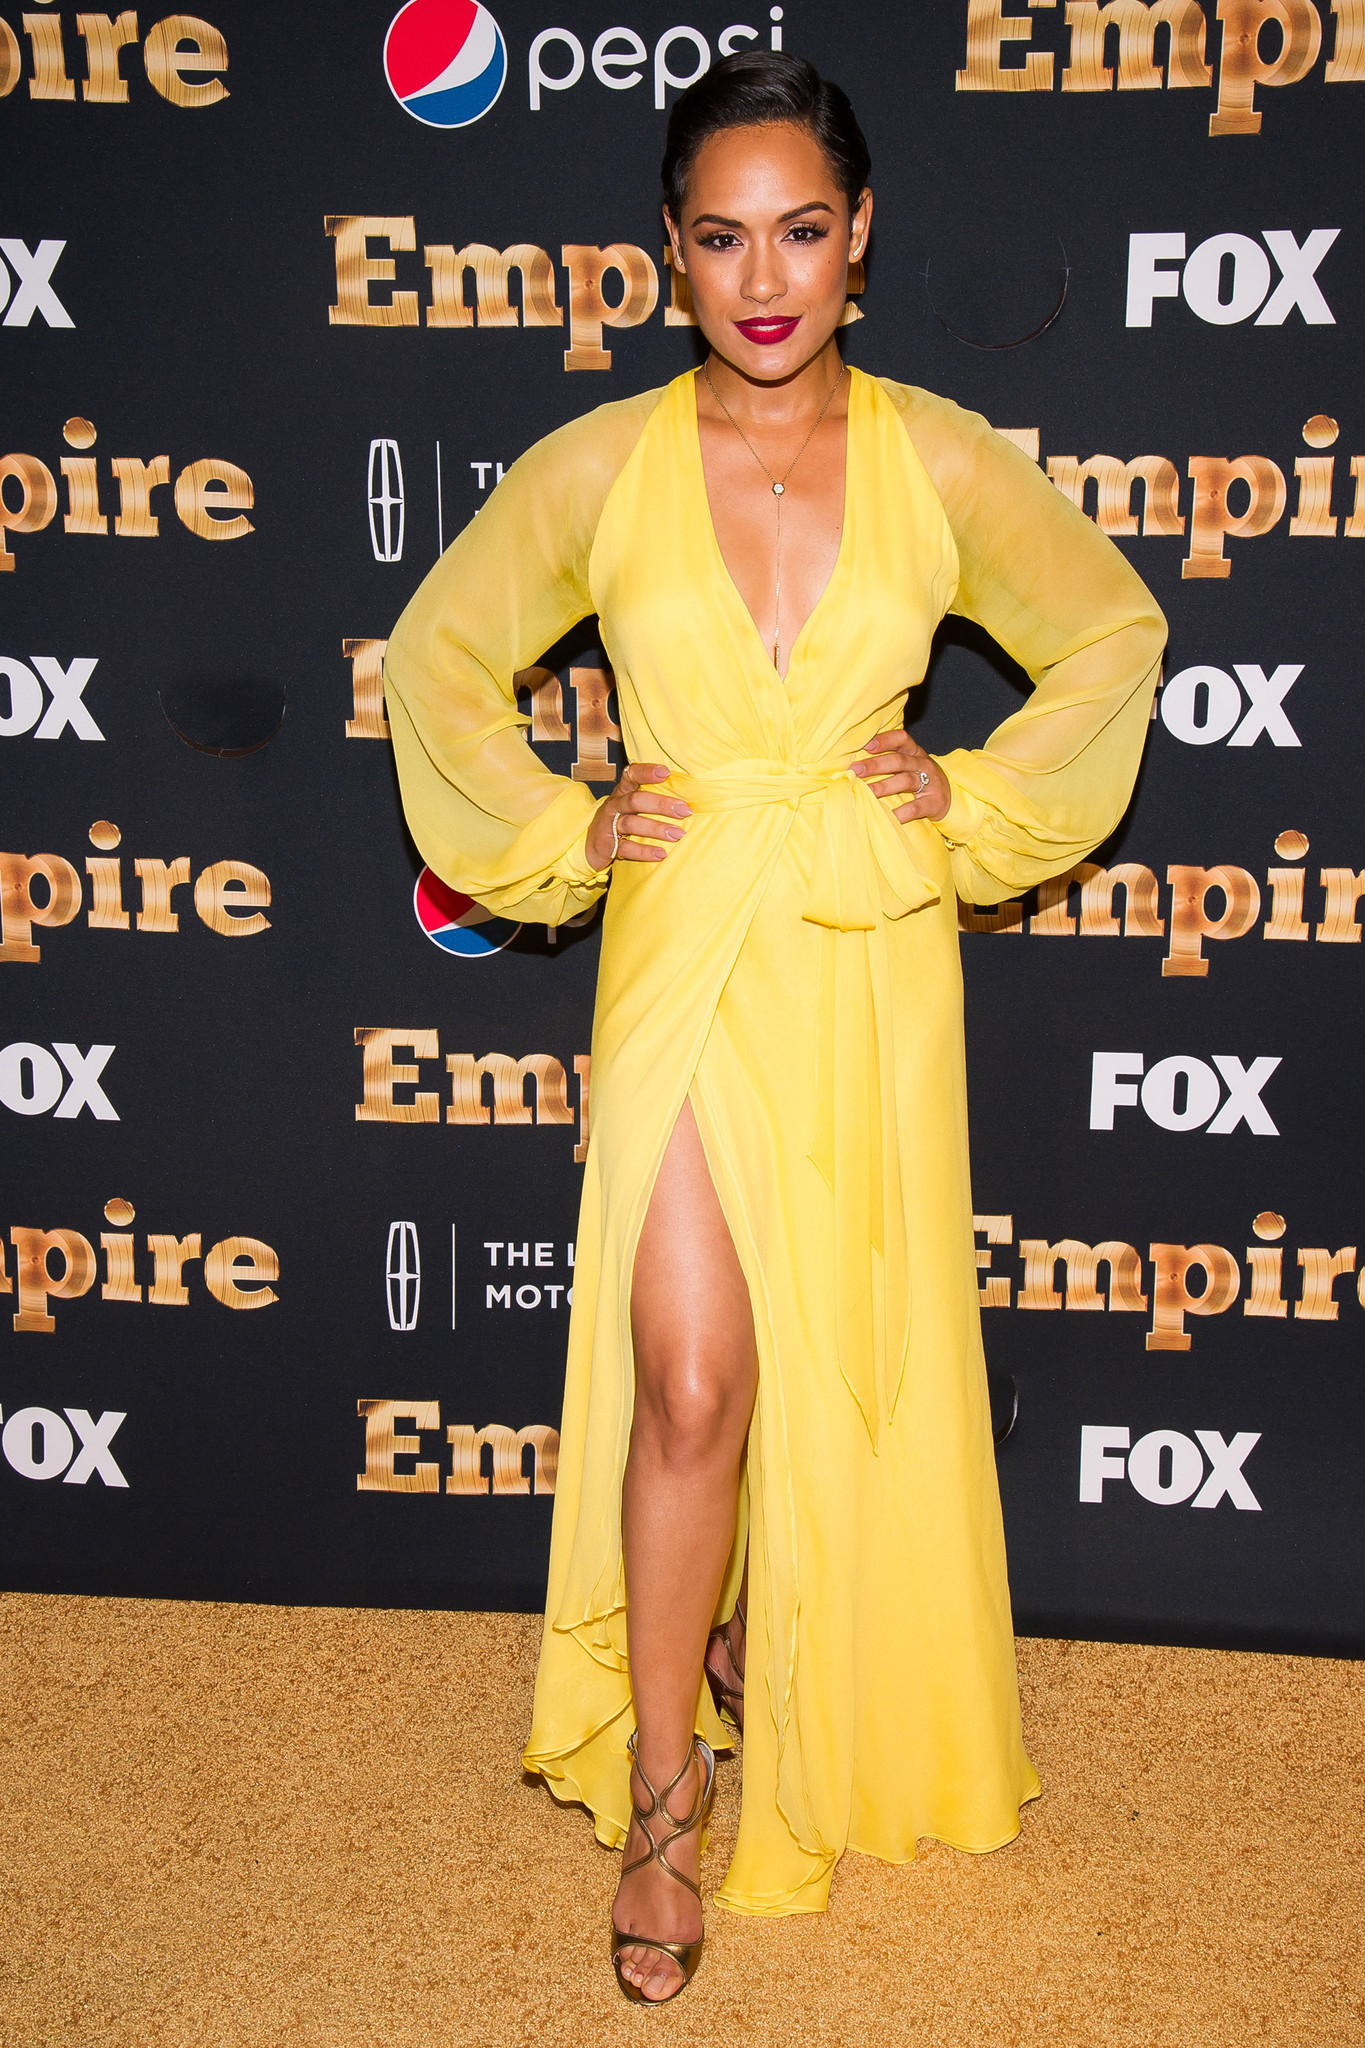 Empire' star Grace Gealey confirms engagement to co-star - Chicago ...